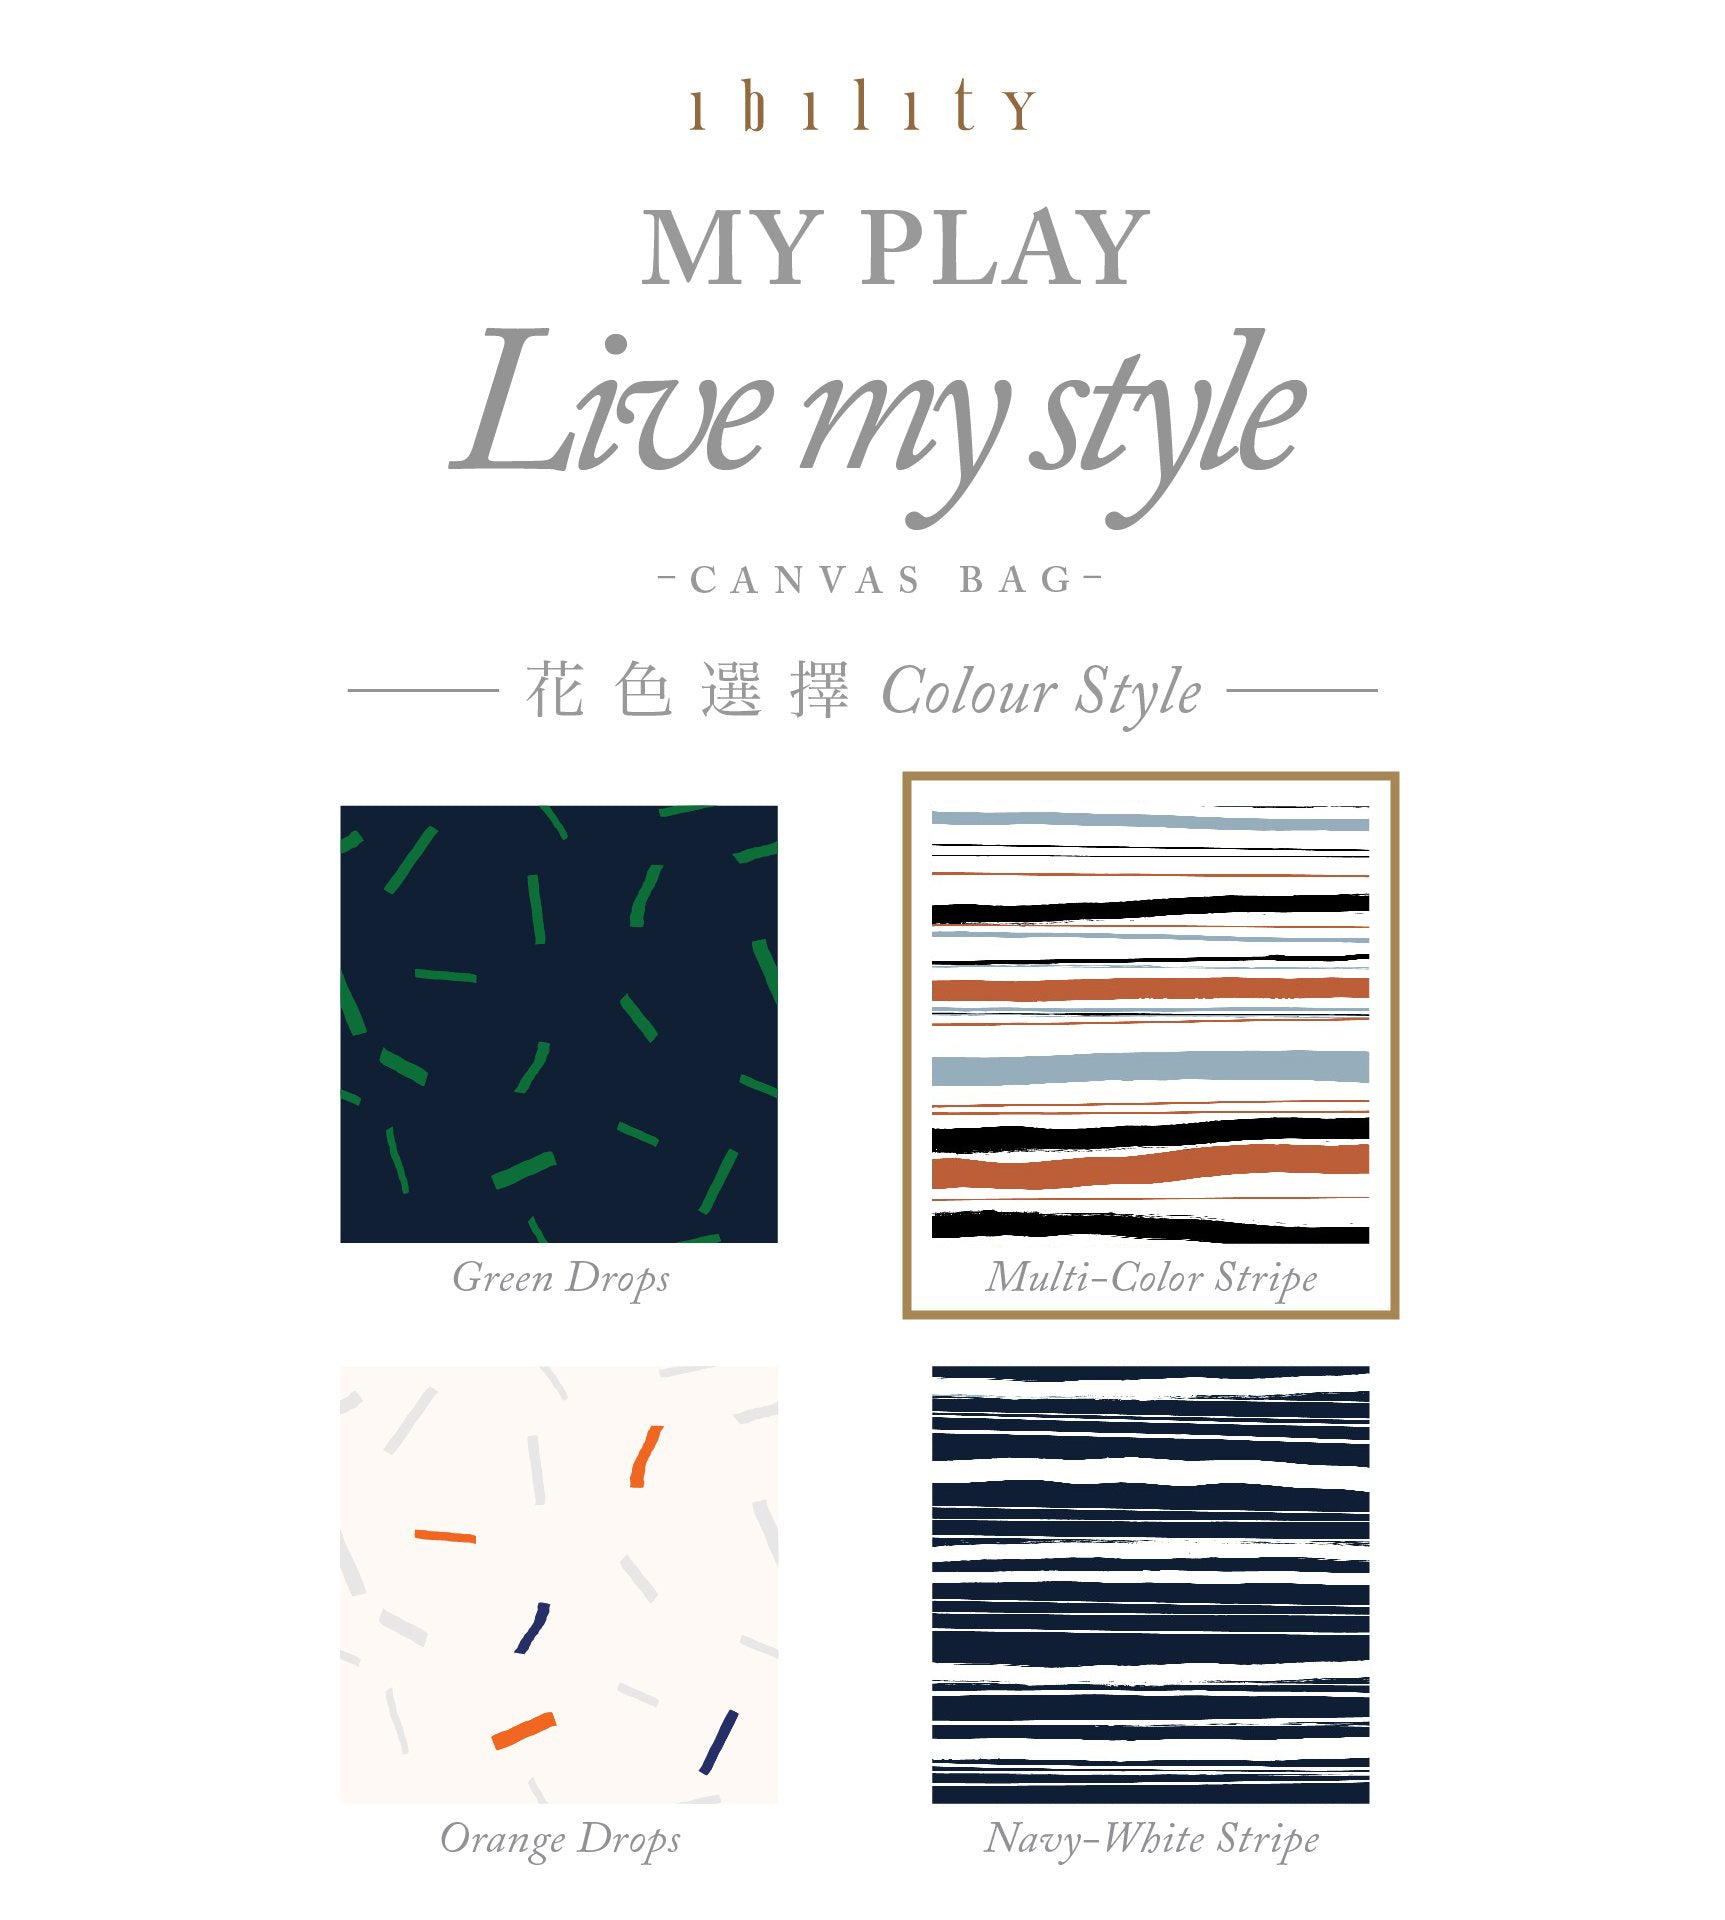 My Play - Live My Style Canvas Bag